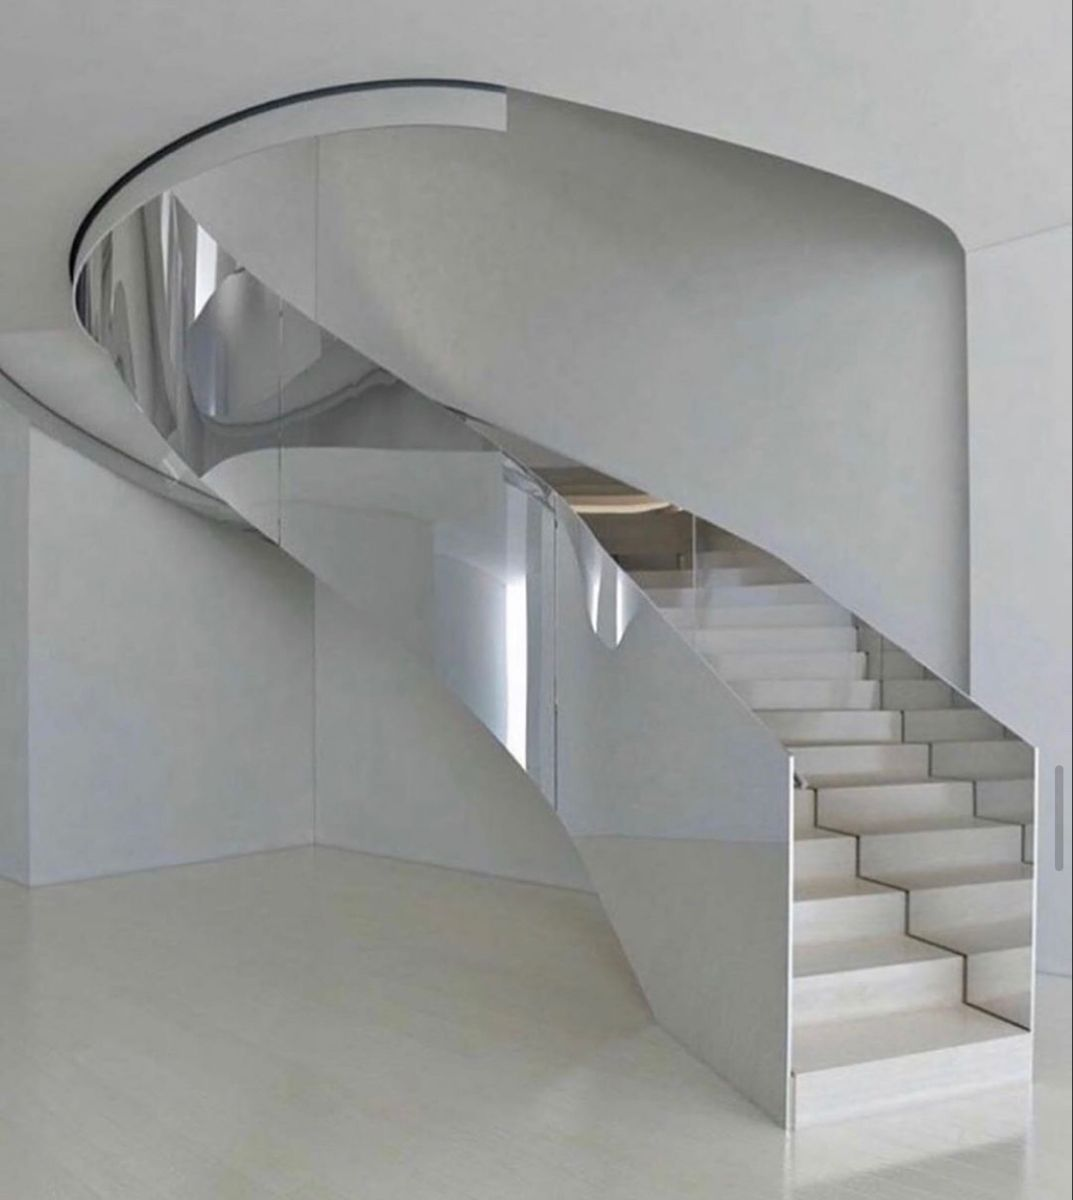 Pin by 𝑩𝒚𝒖𝒏𝒏𝒊𝒆 𝑩𝒐𝒐 on interior in 2020 | Modern staircase, Stairs design, Interior staircase